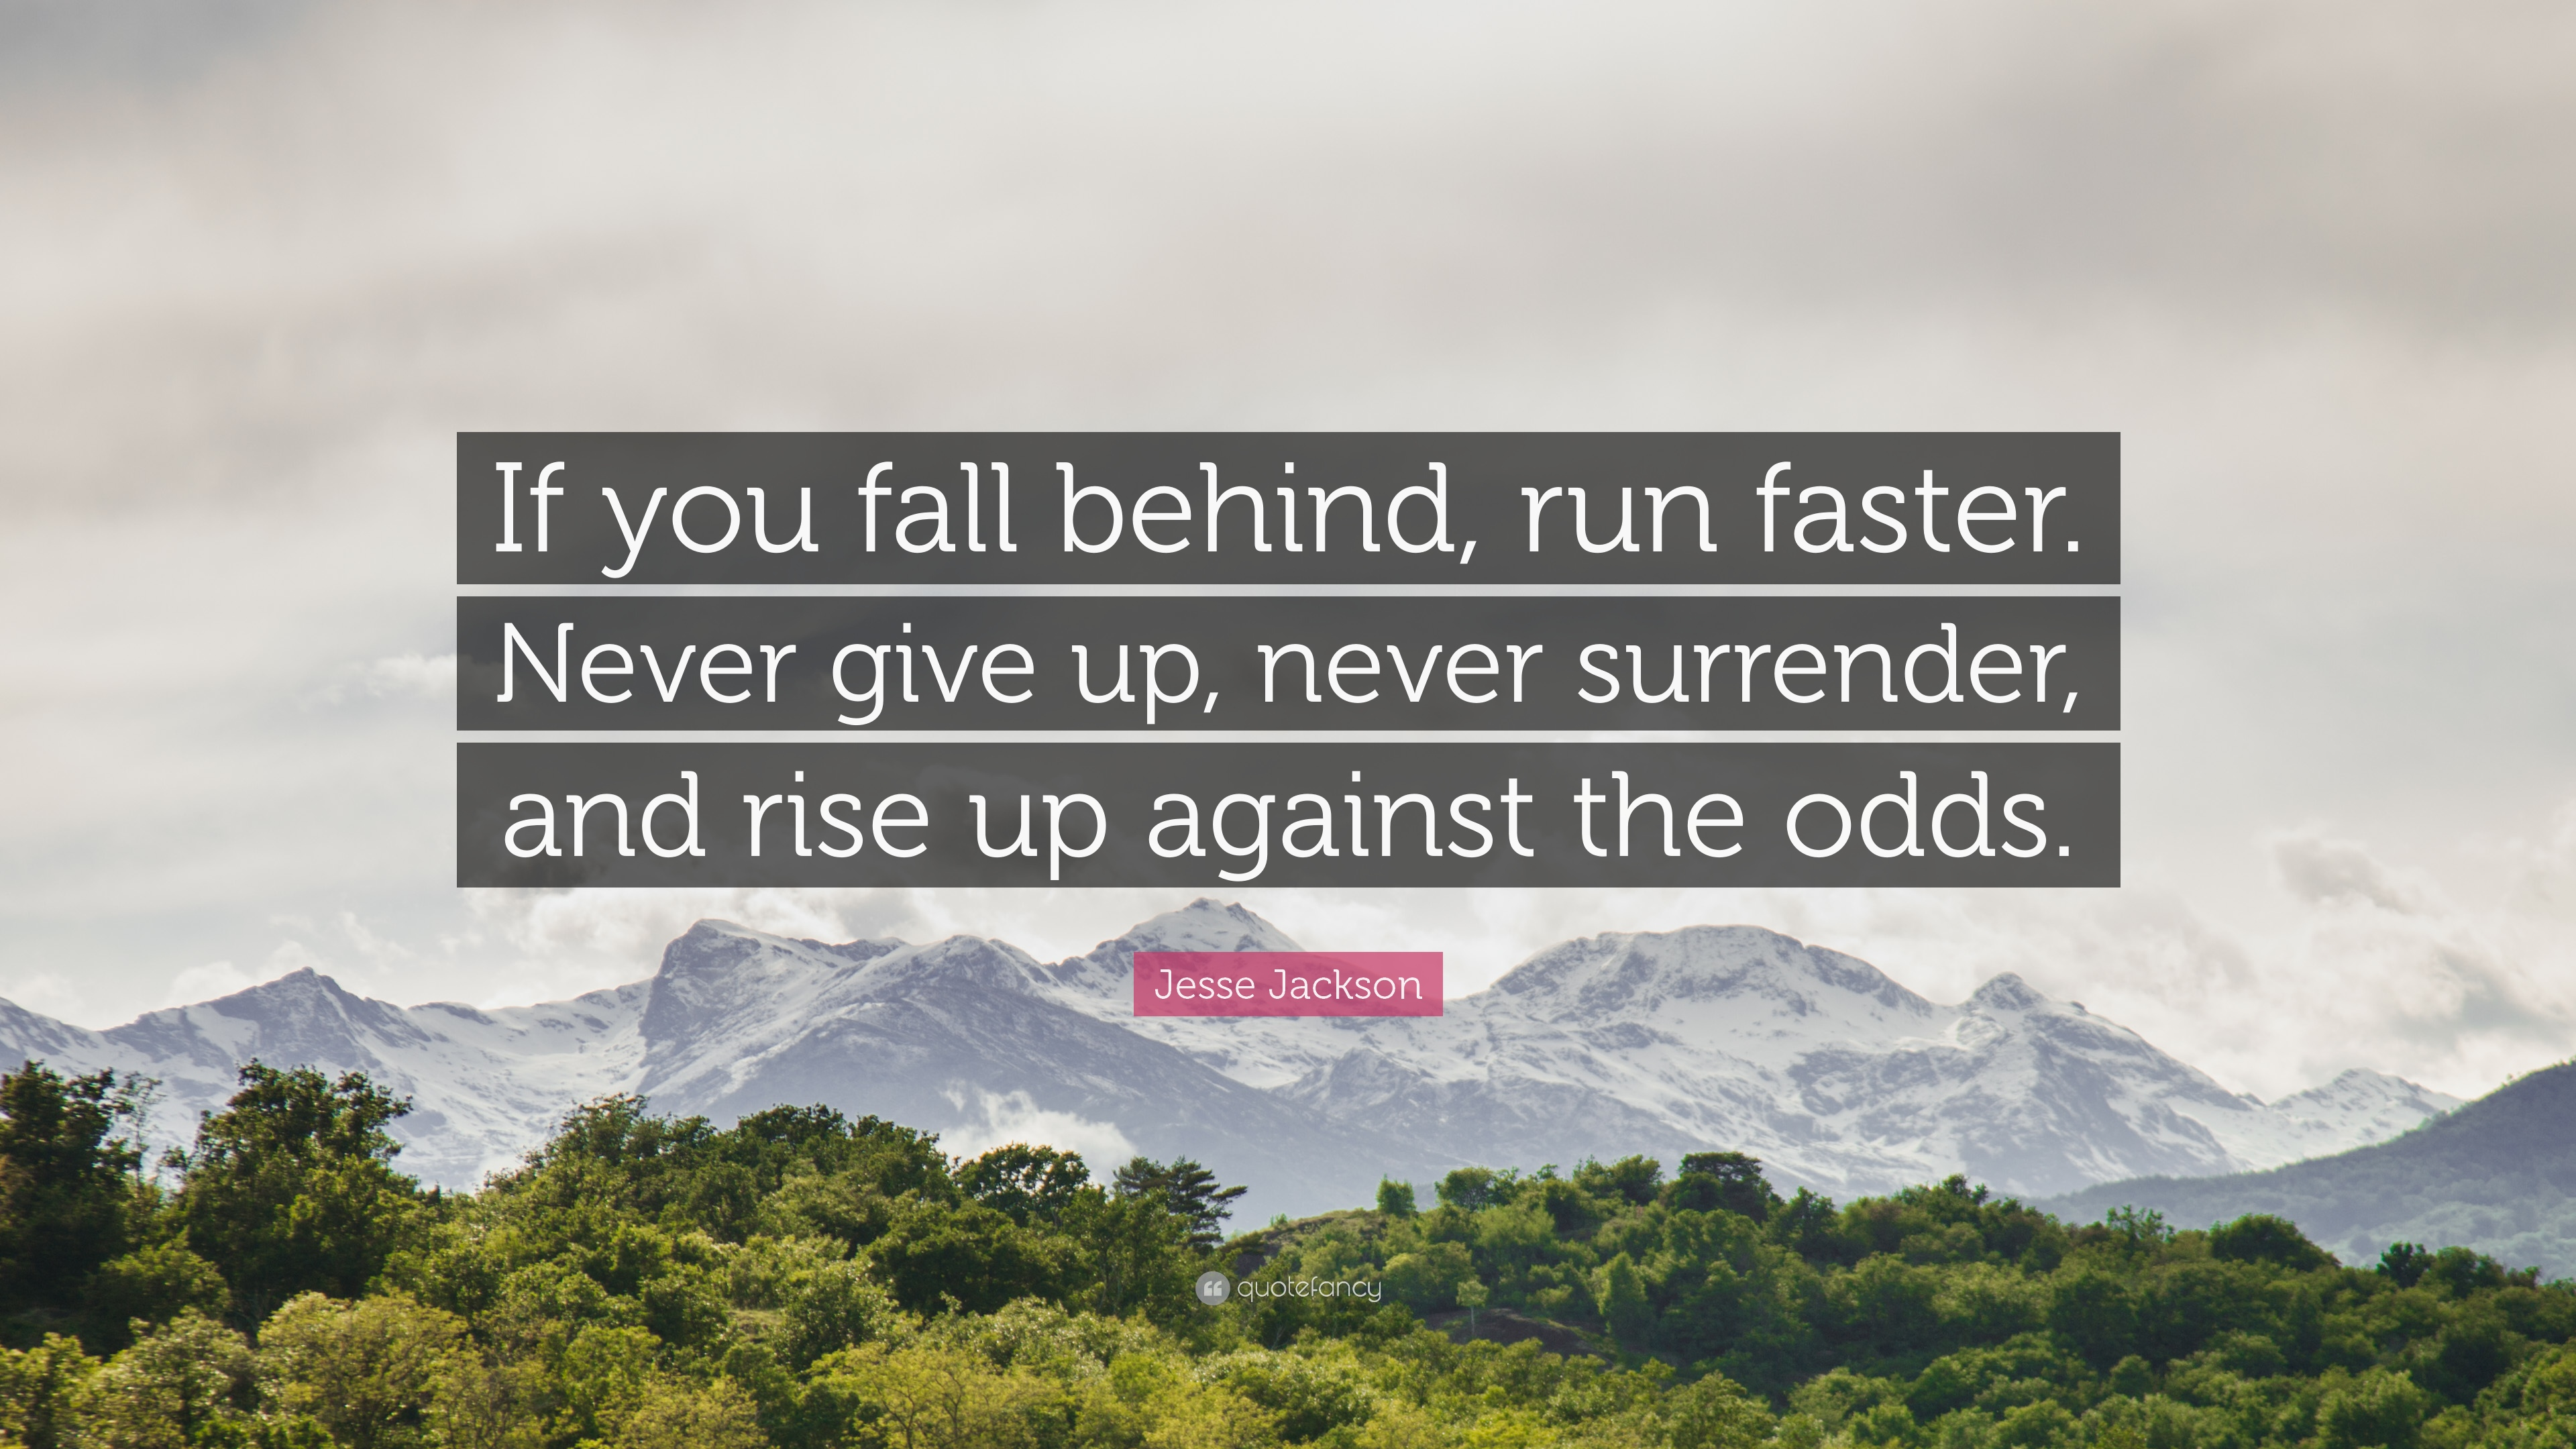 Jesse Jackson Quote If You Fall Behind Run Faster Never Give Up